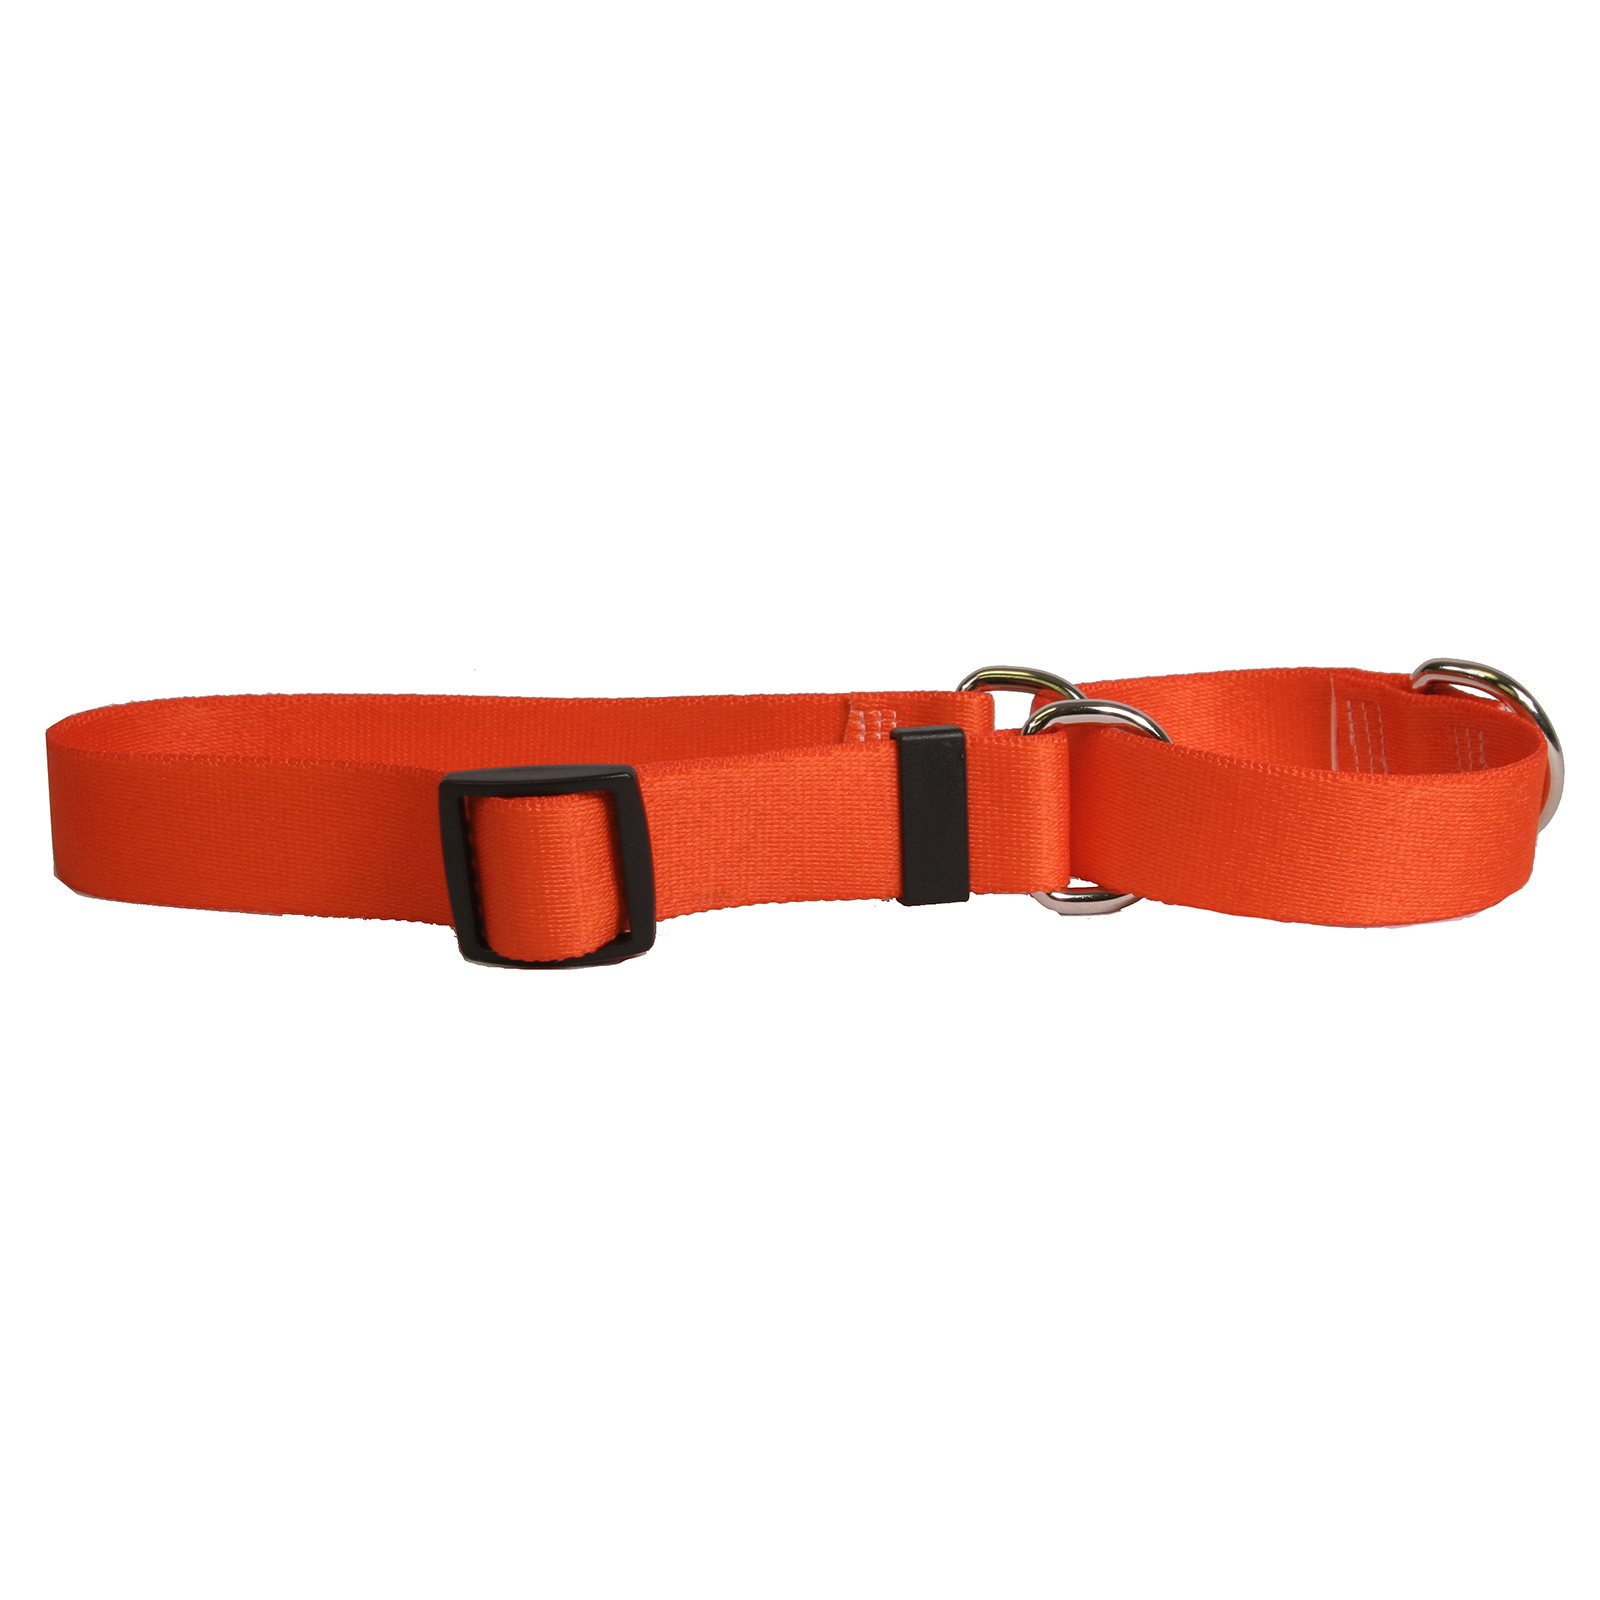 Solid Orange Martingale Collar